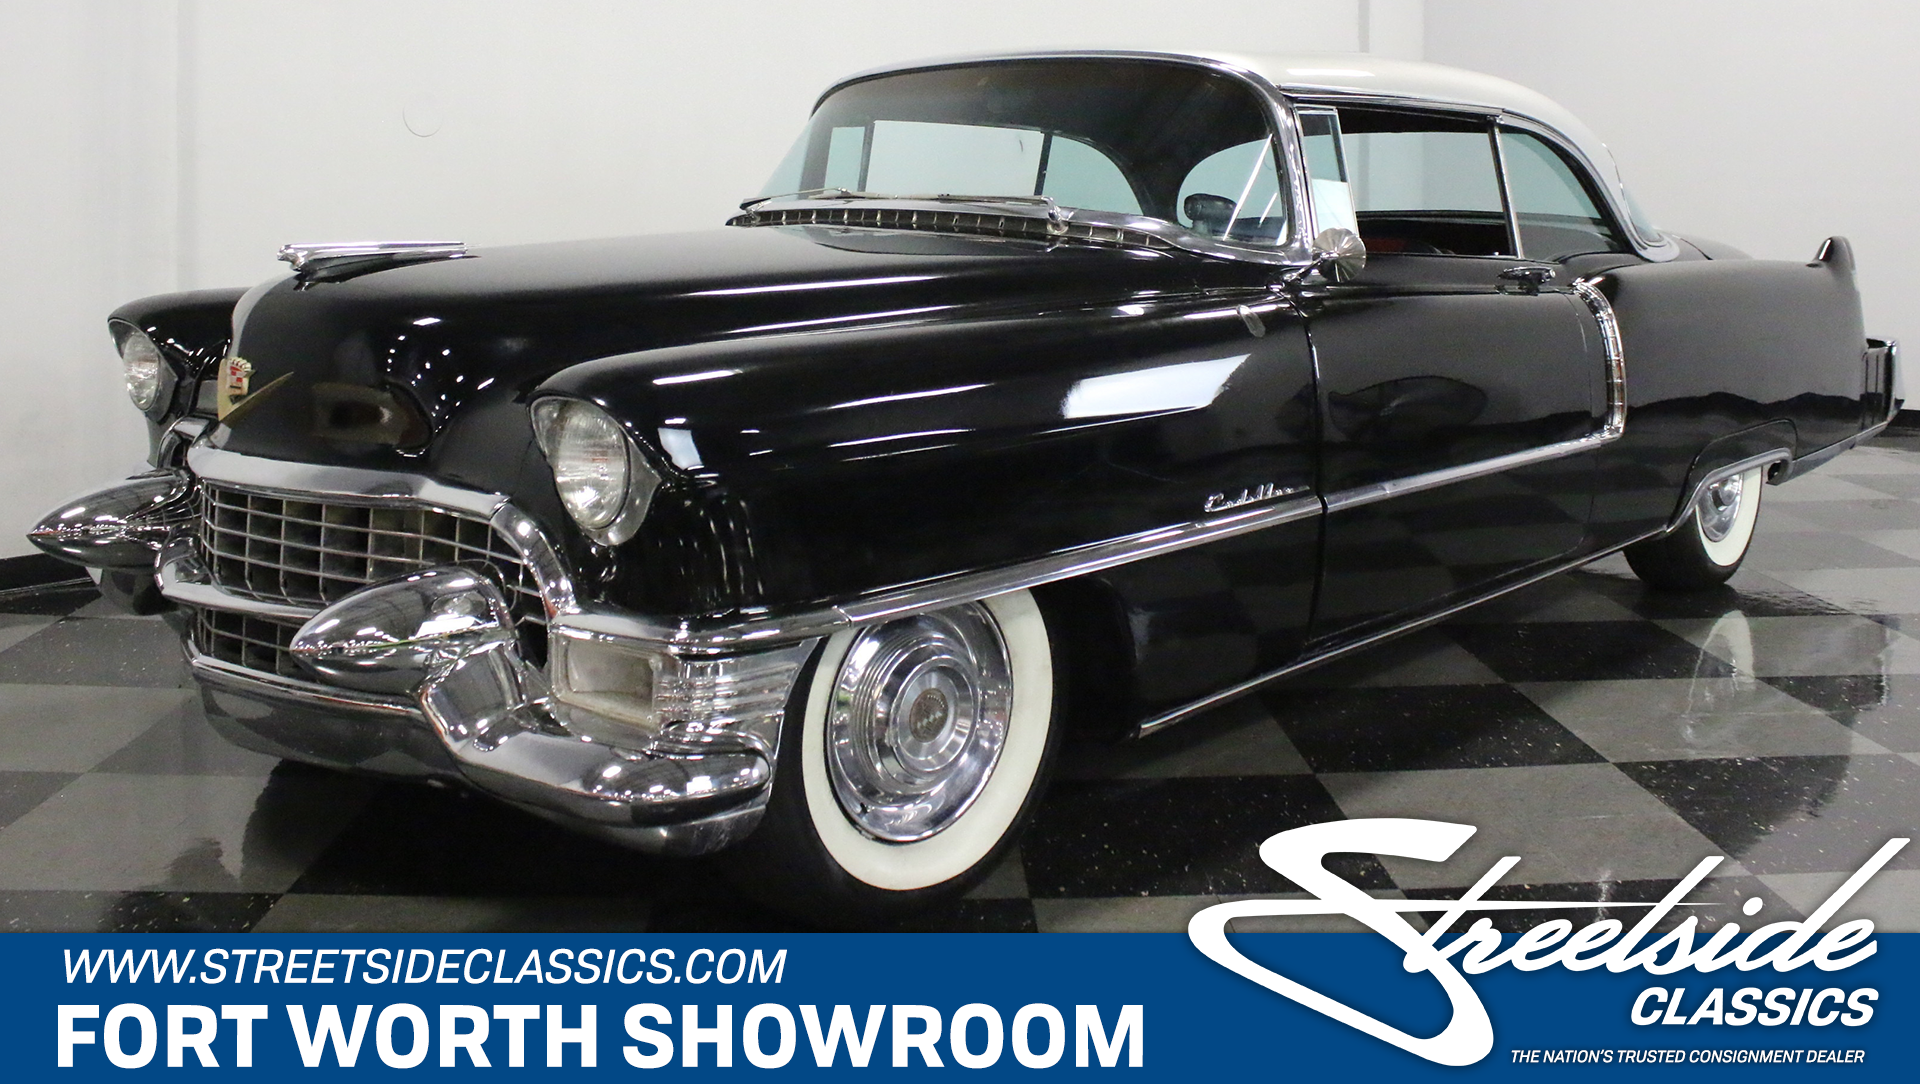 1955 cadillac series 62 streetside classics the nation 39 s trusted classic car consignment dealer. Black Bedroom Furniture Sets. Home Design Ideas